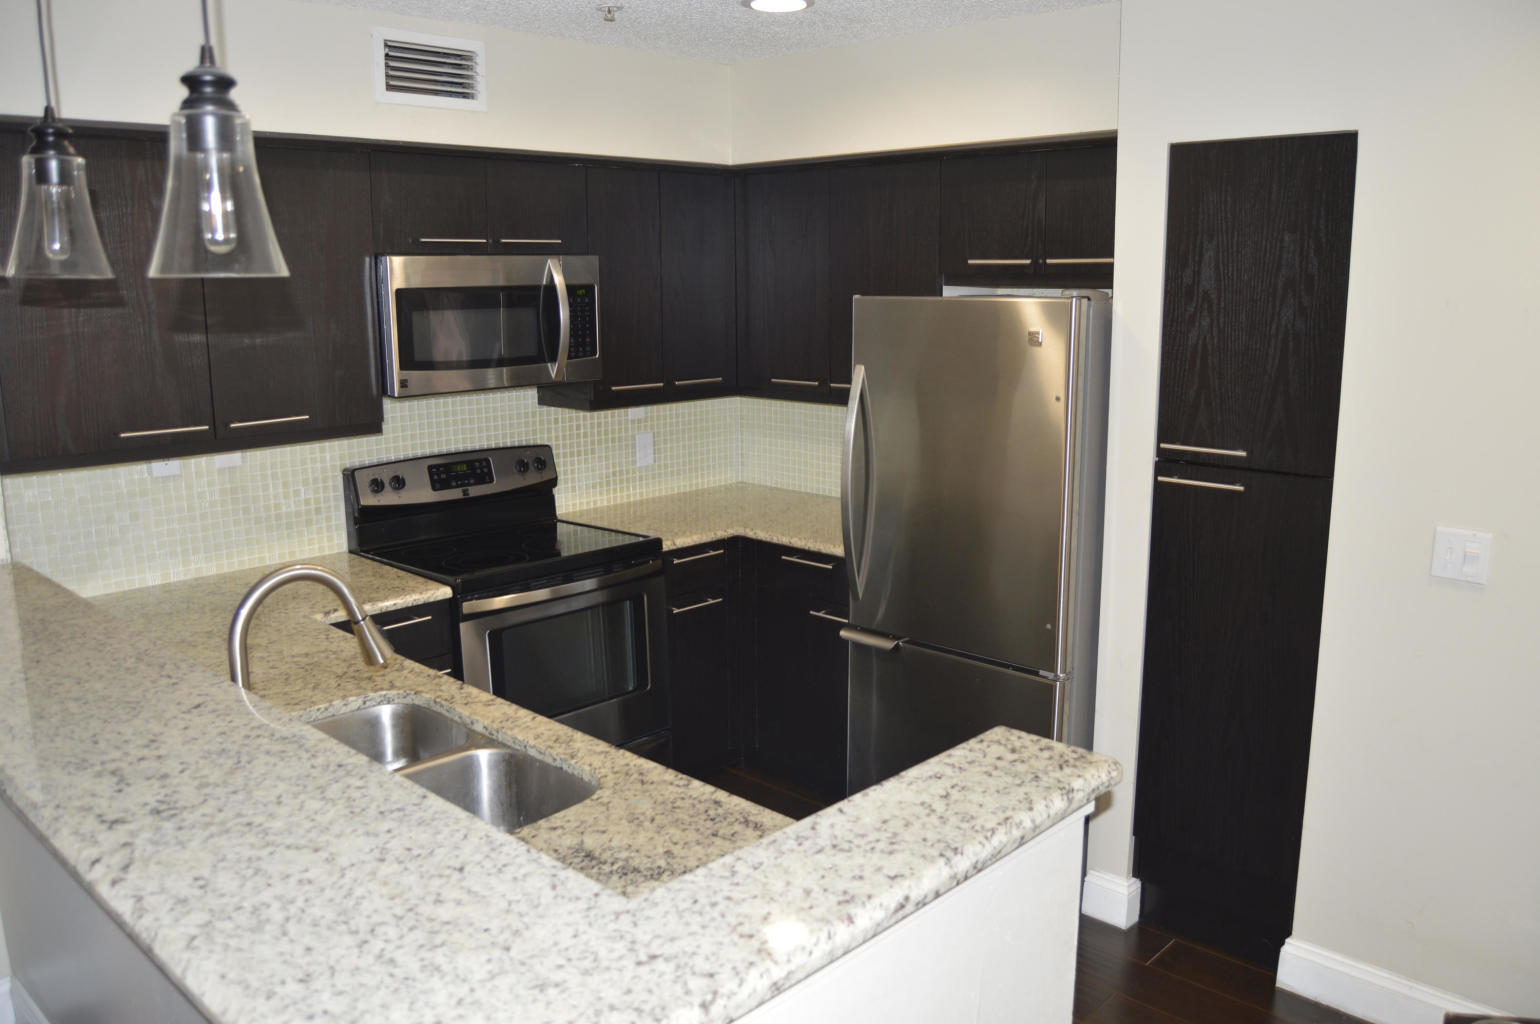 It is rare to find a bright, spacious and upgraded condo in a gated community with such an amazing school district for this price! Come see this condo before it is too late, and you end up in your bedroom, crying over it. It is close to schools, malls, shopping, hospitals, beaches, restaurants and much, much more. Call to see it today!! :)